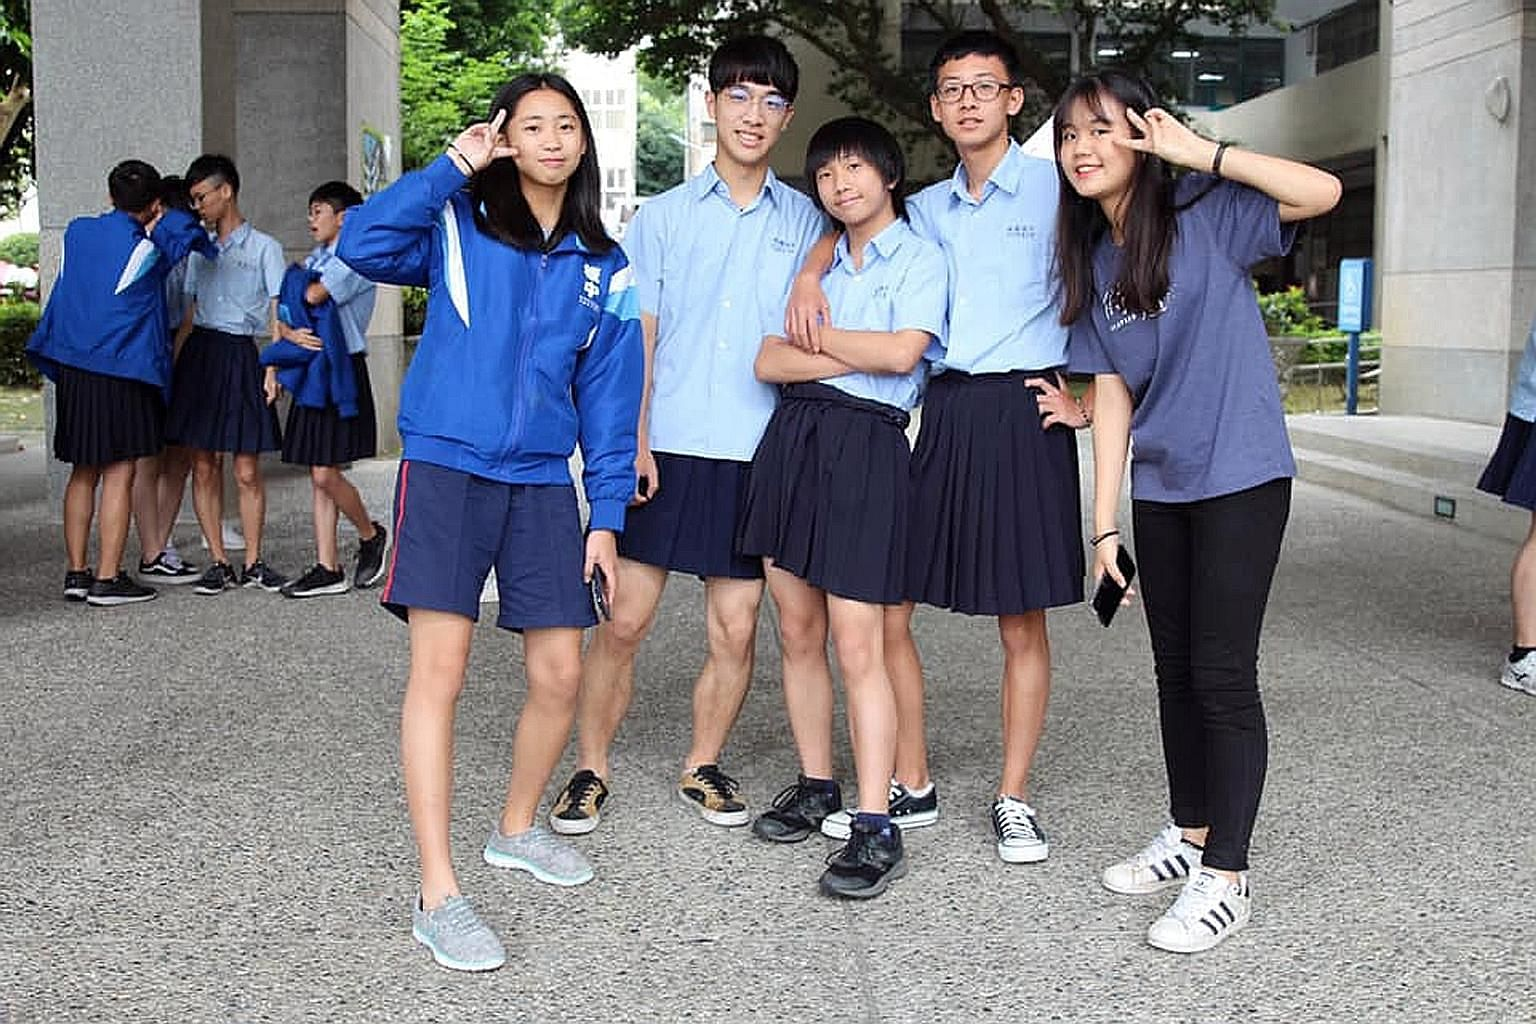 Students at Banqiao Senior High School near Taipei will be allowed to wear skirts or trousers, come end-August.